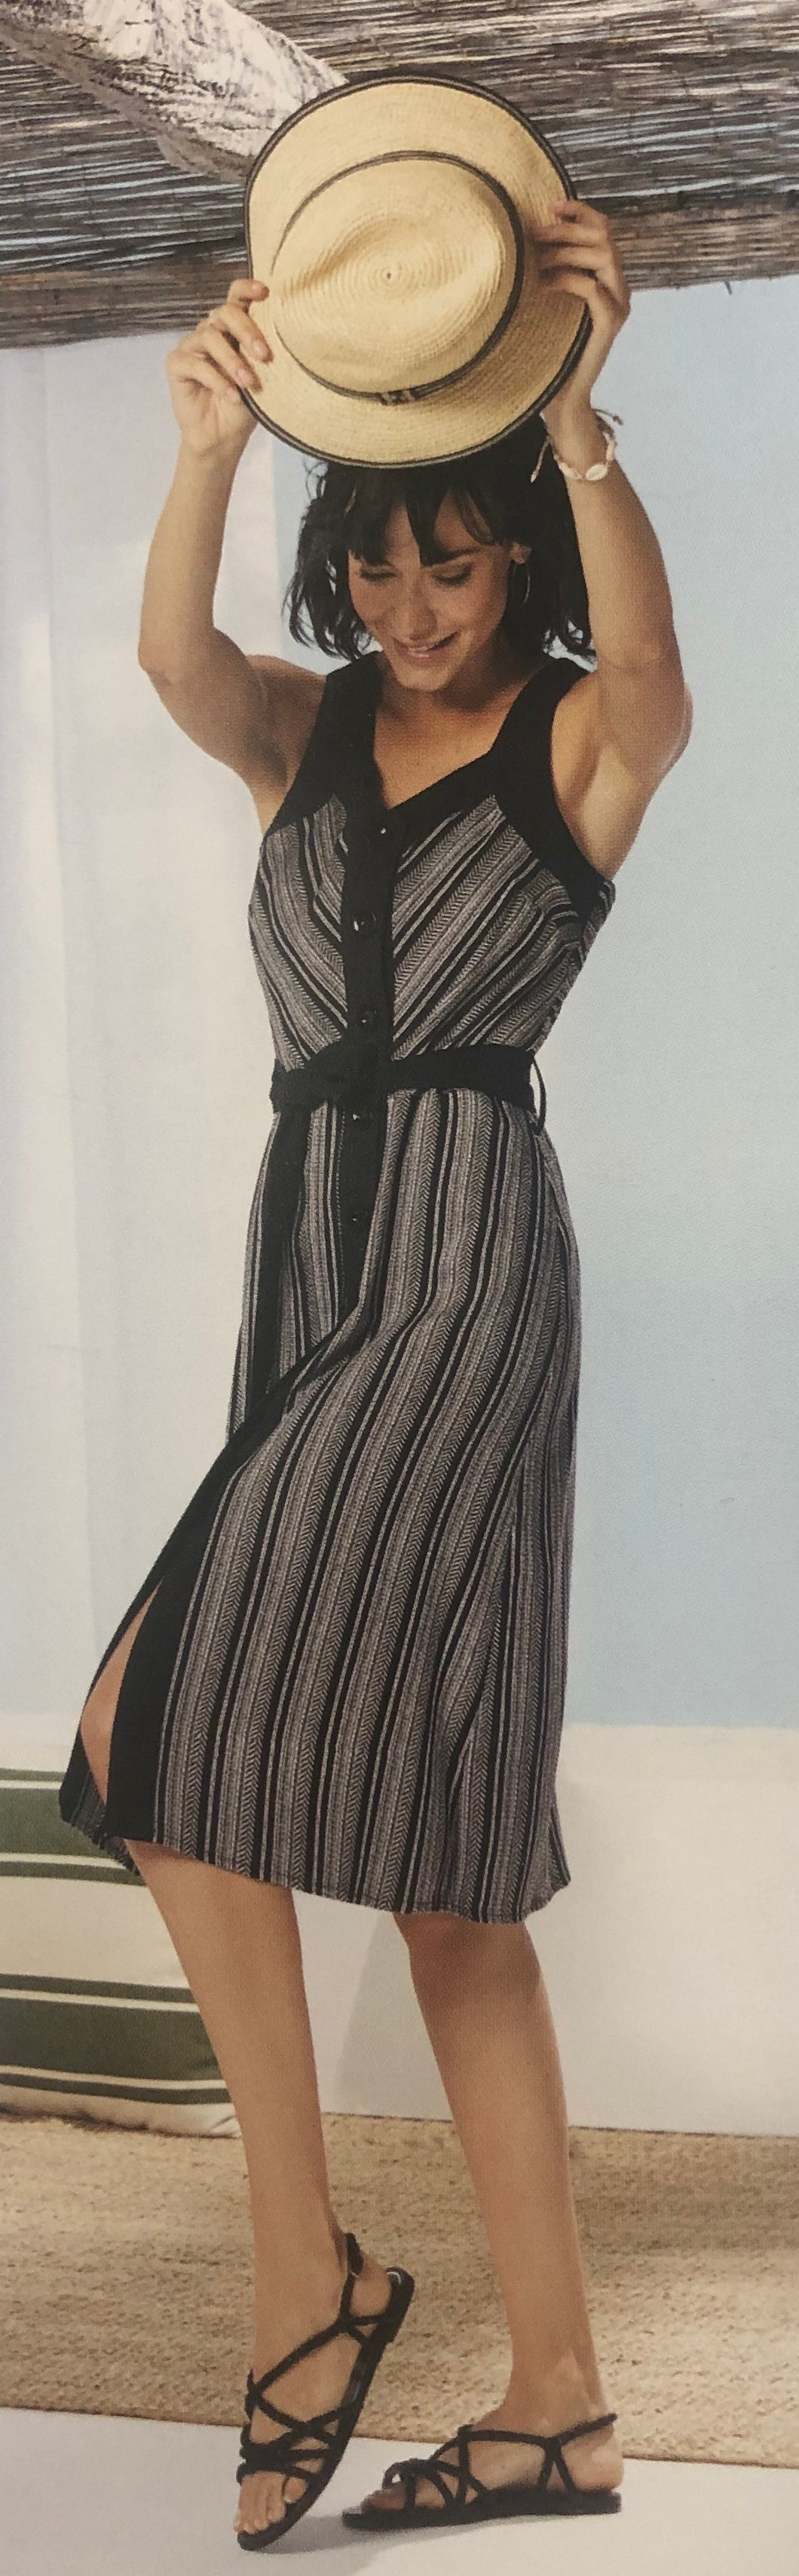 Paz Torras Black and White Print Dress